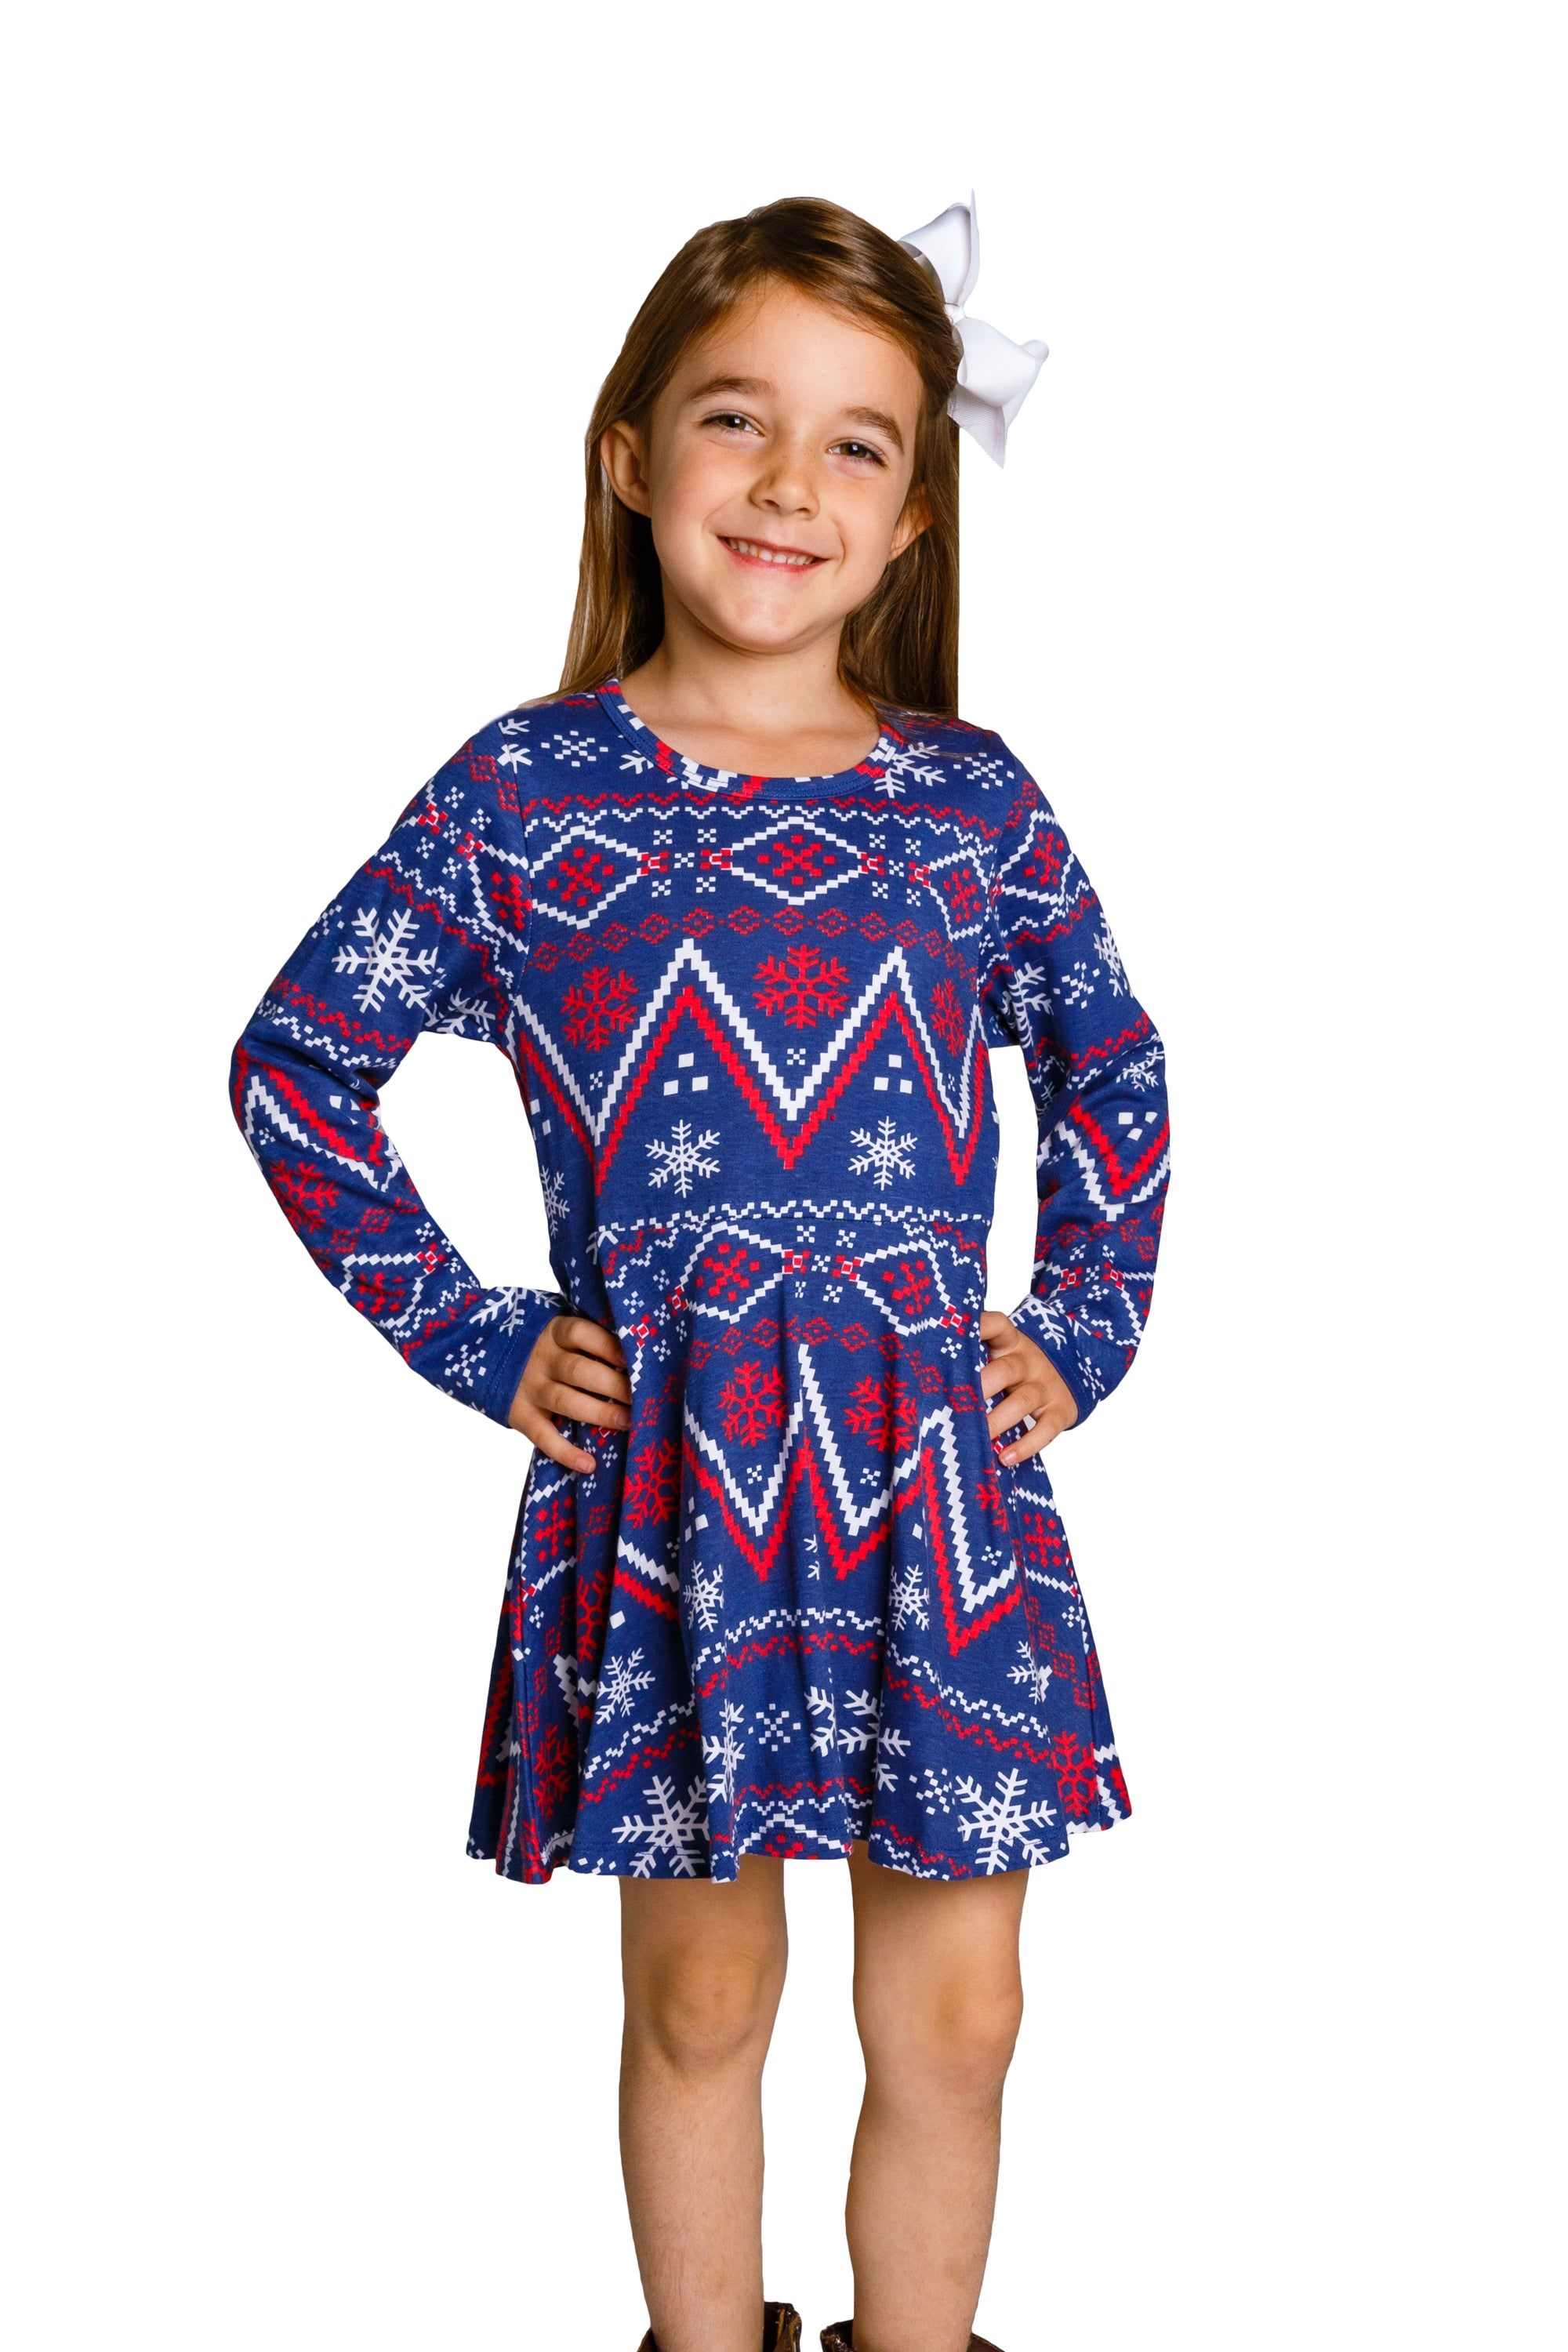 45d08a70041 Cute Toddler Girl Christmas Dresses - Data Dynamic AG